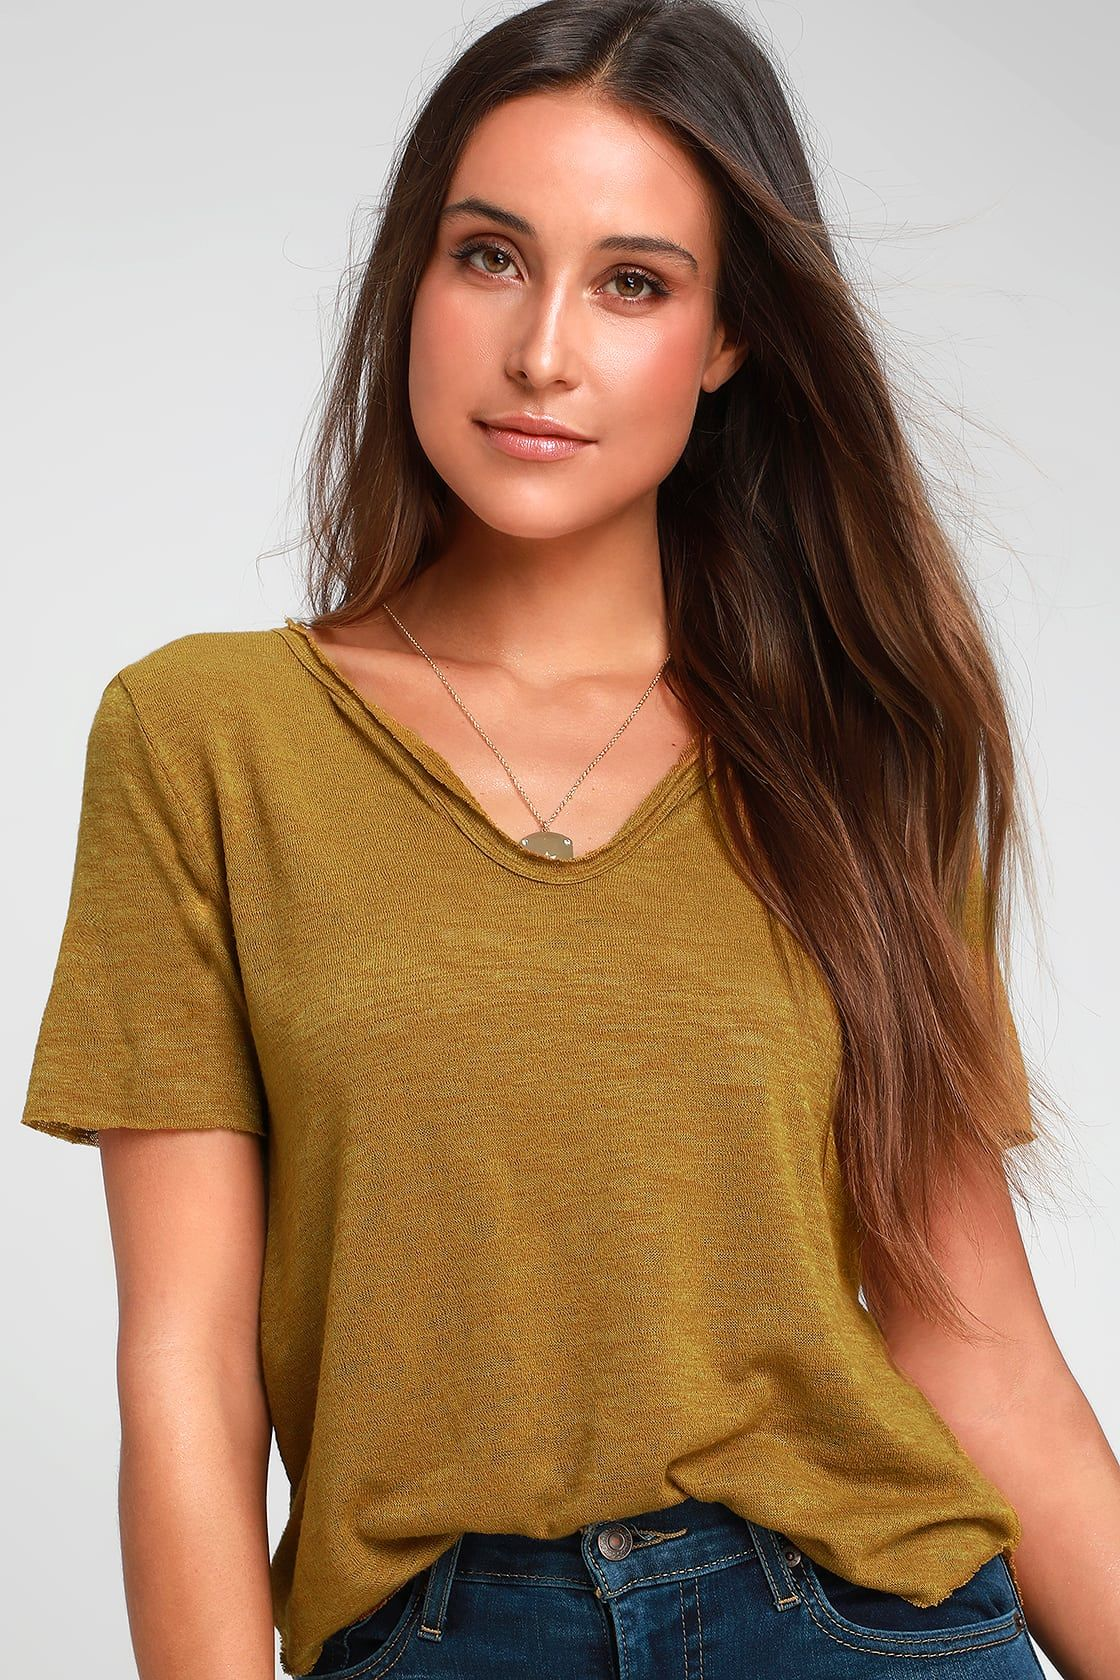 b3280c50dfcb79 Here and Now Mustard Yellow Burnout Tee